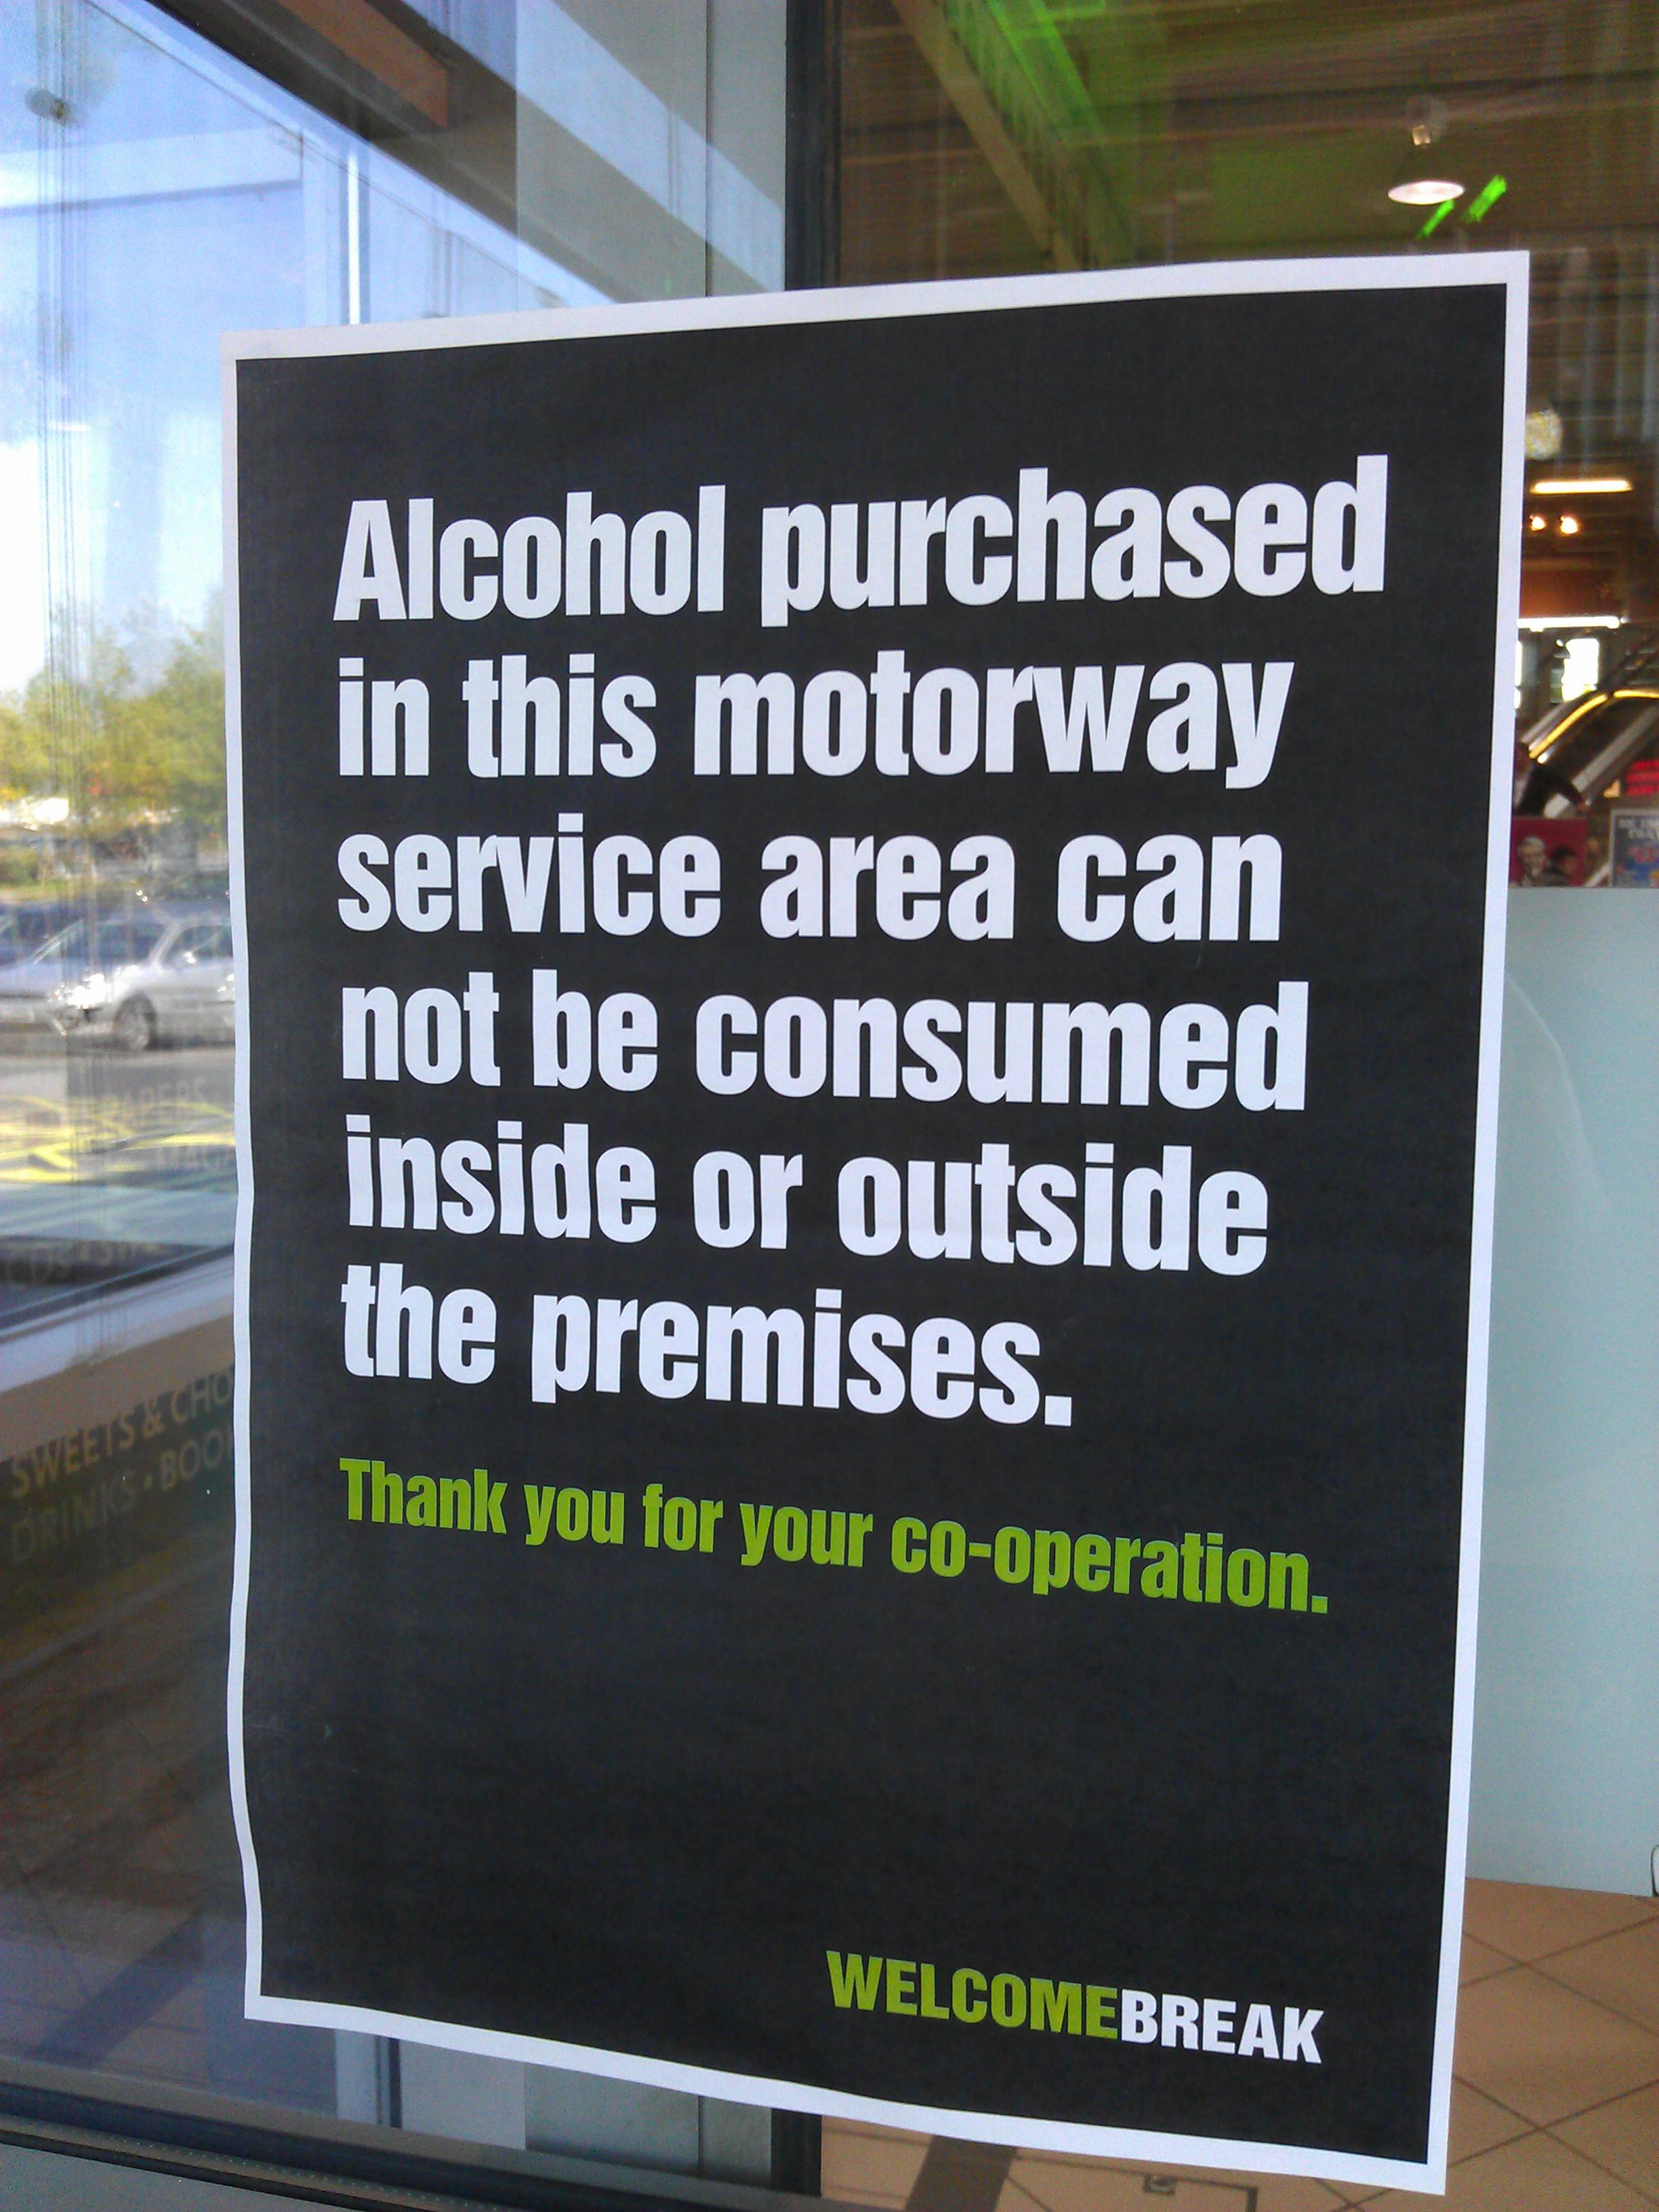 Alcohol purchased in this motorway service area can not be consumed inside or outside the premises.